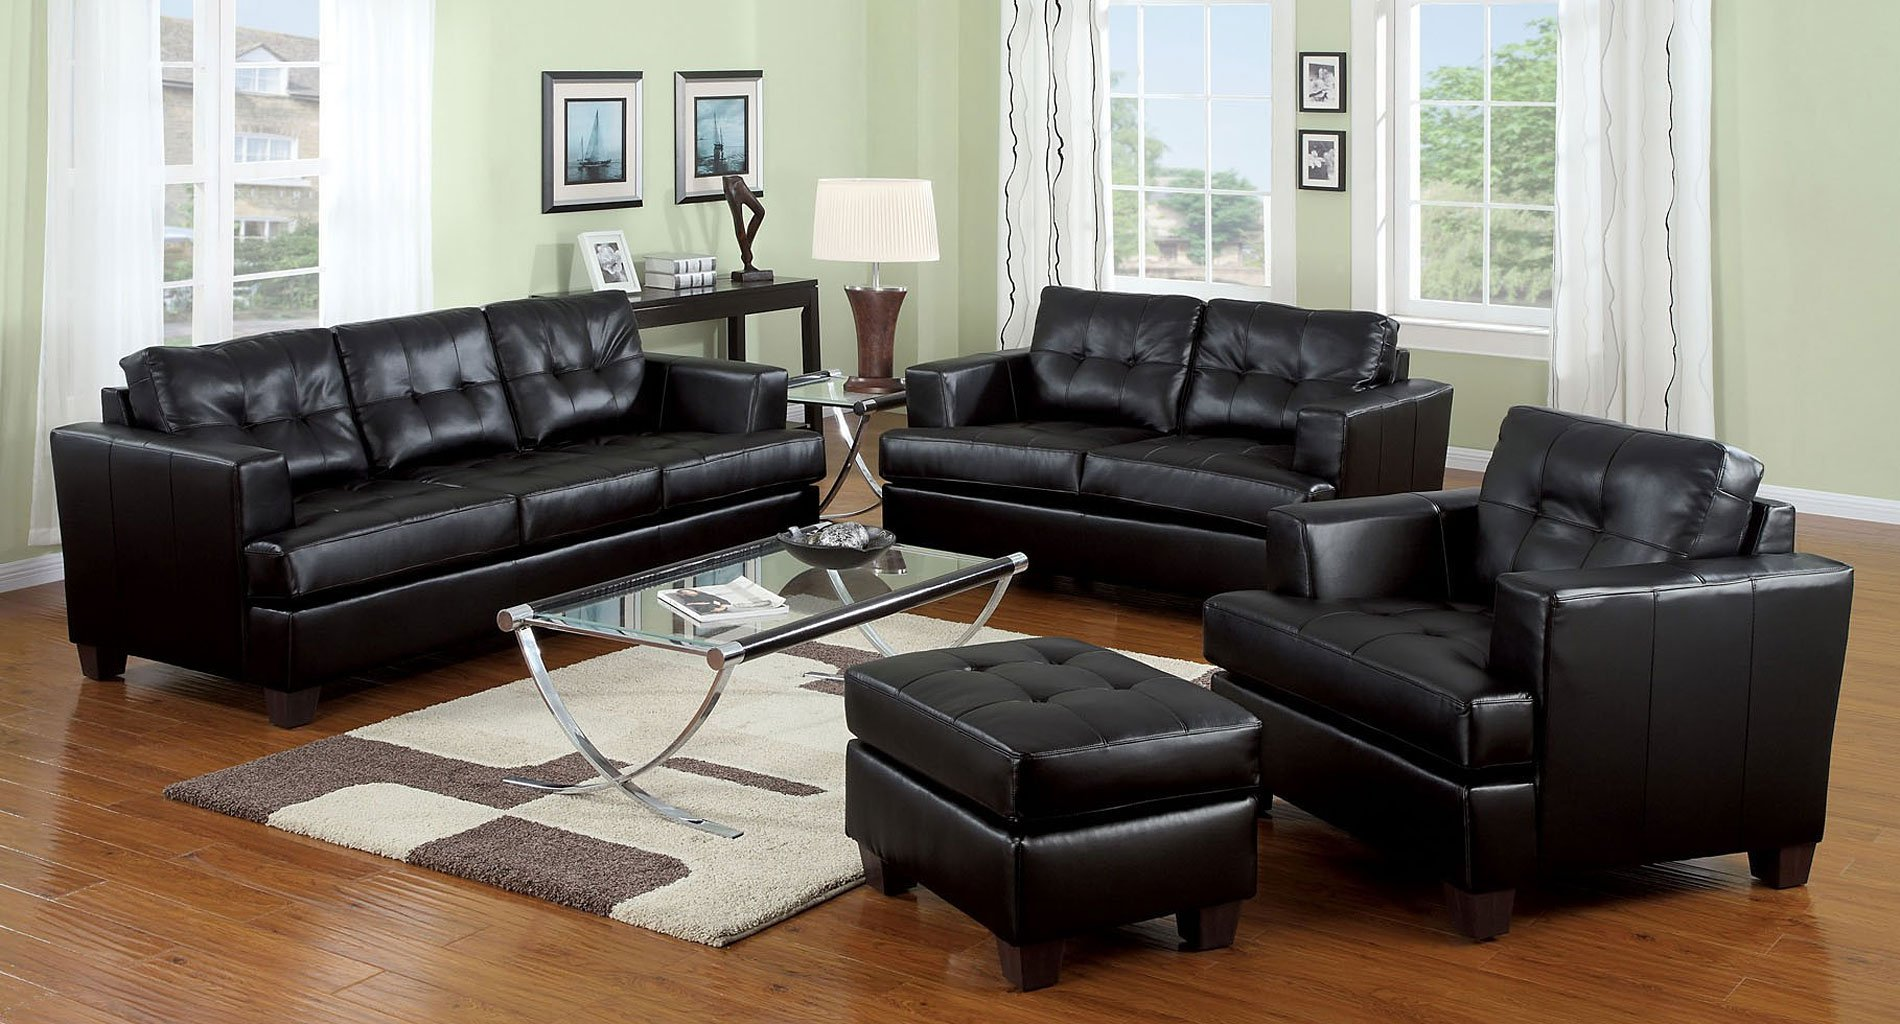 Platinum Living Room Set Black Acme Furniture